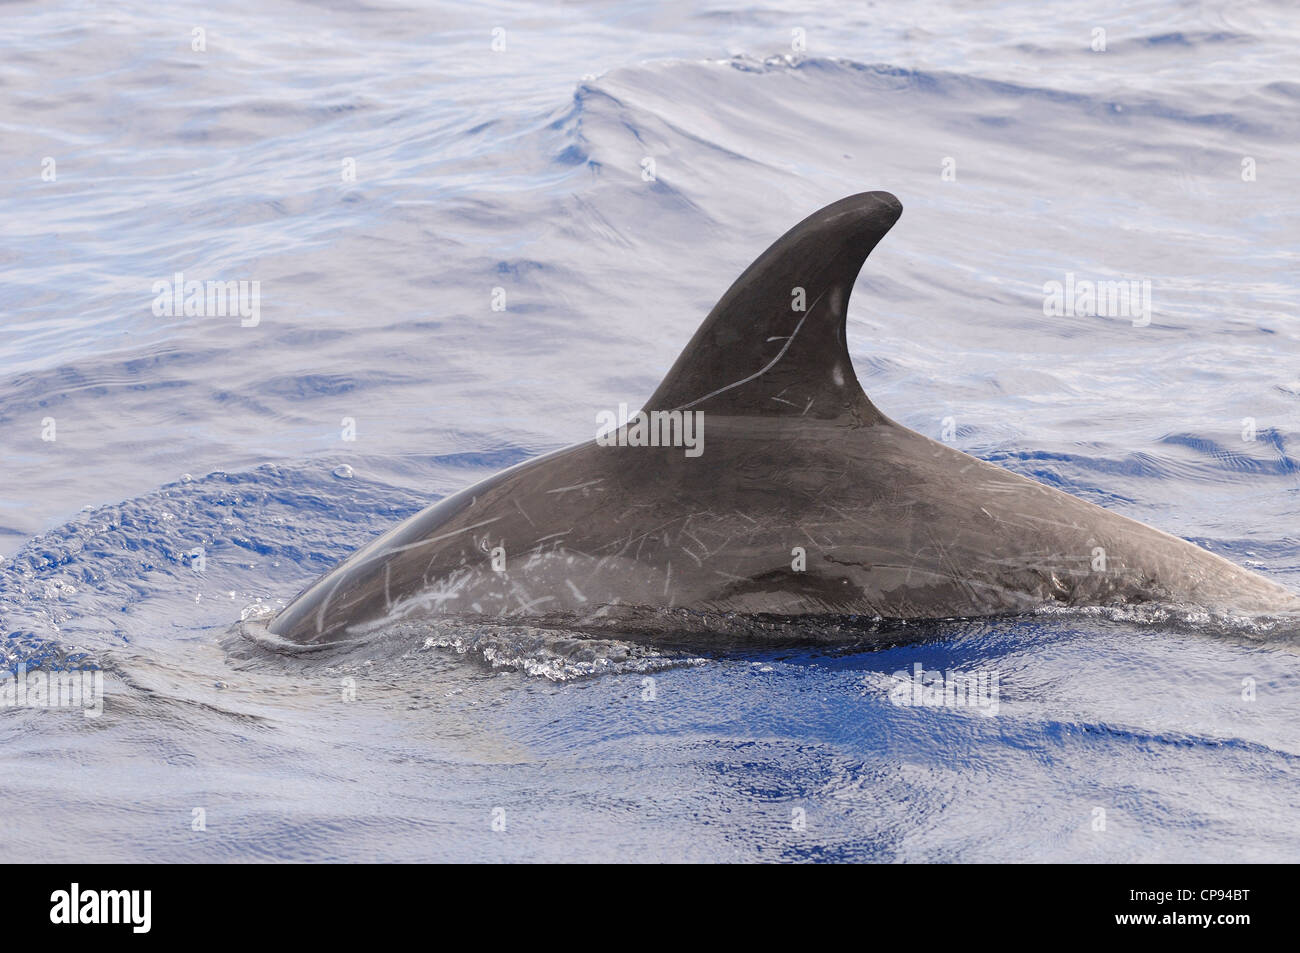 Risso's Dolphin (Grampus griseus) close-up of dorsal fin, The Maldives - Stock Image